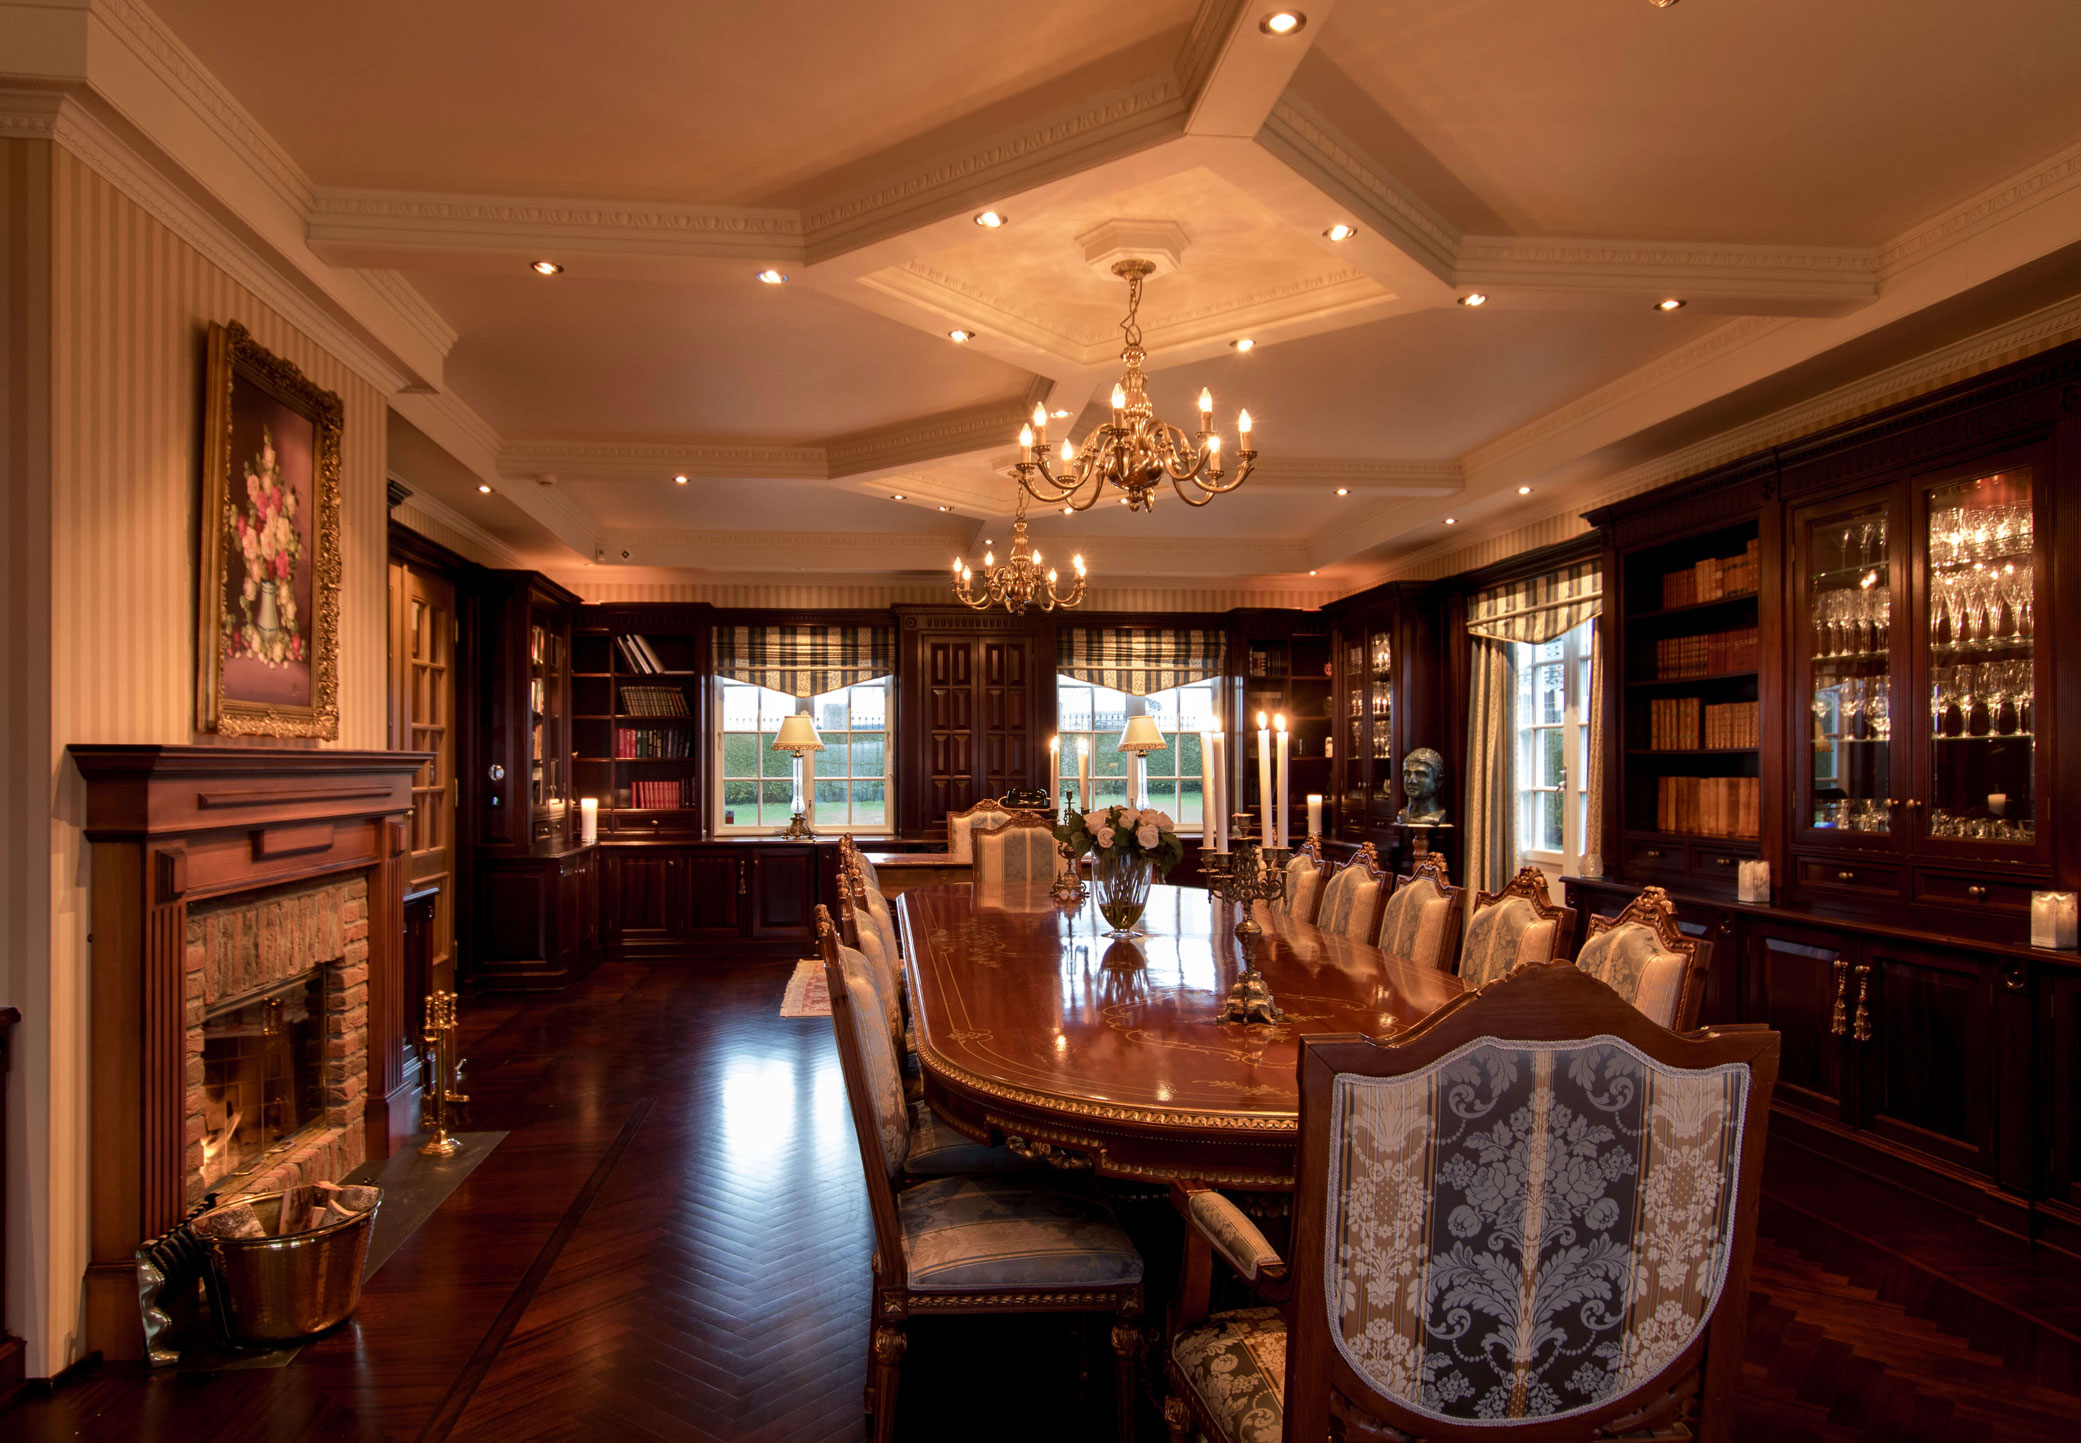 Beautiful roof, fireplace, downlights and floors of the highest standards.